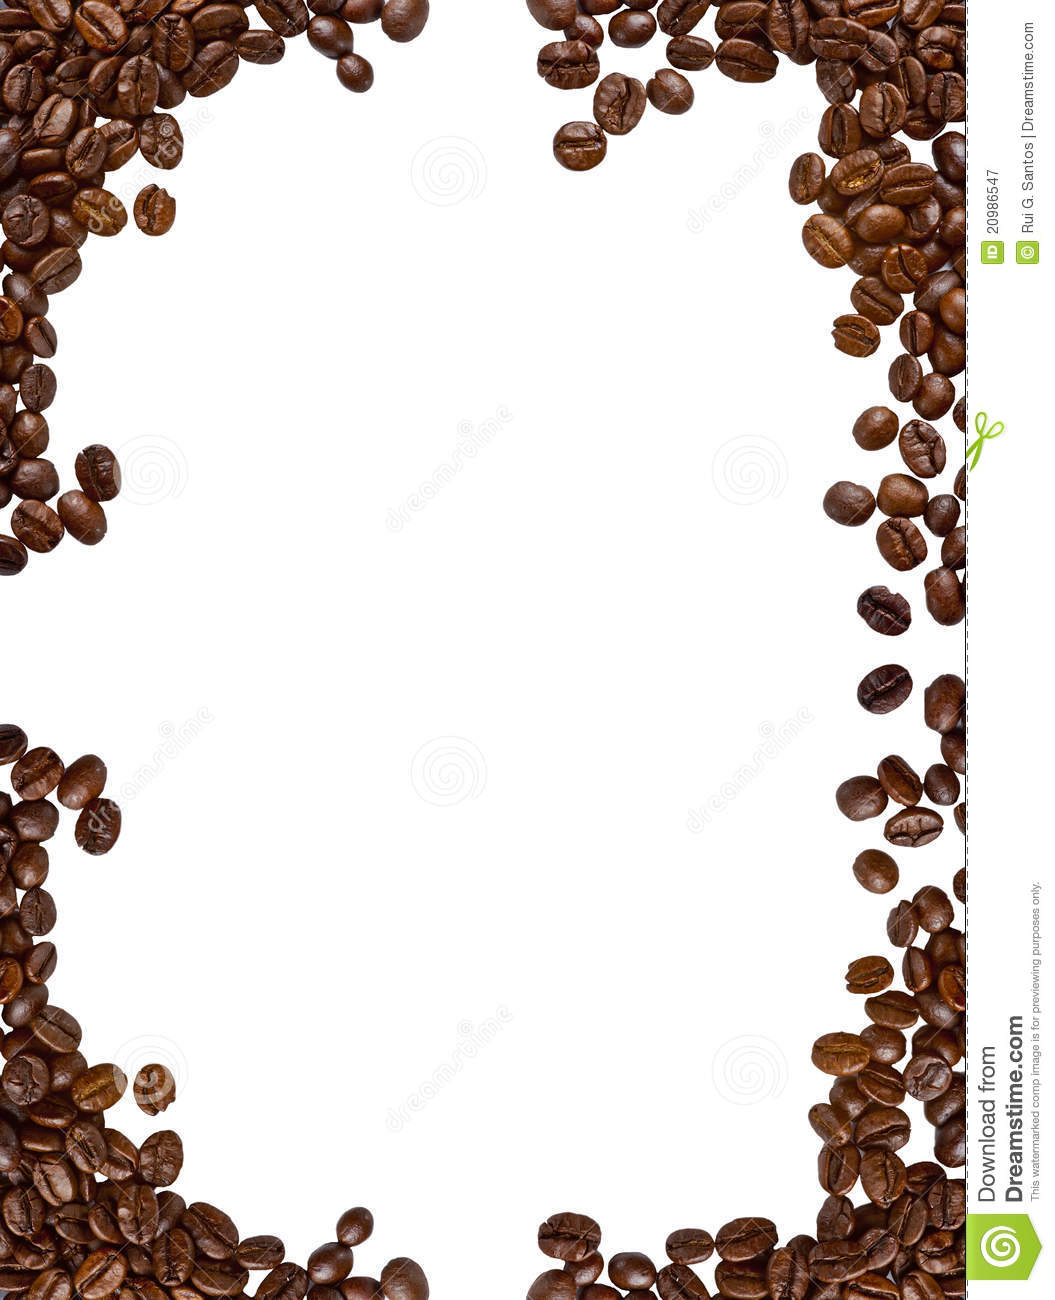 coffee frame royalty free stock photography image 20986547